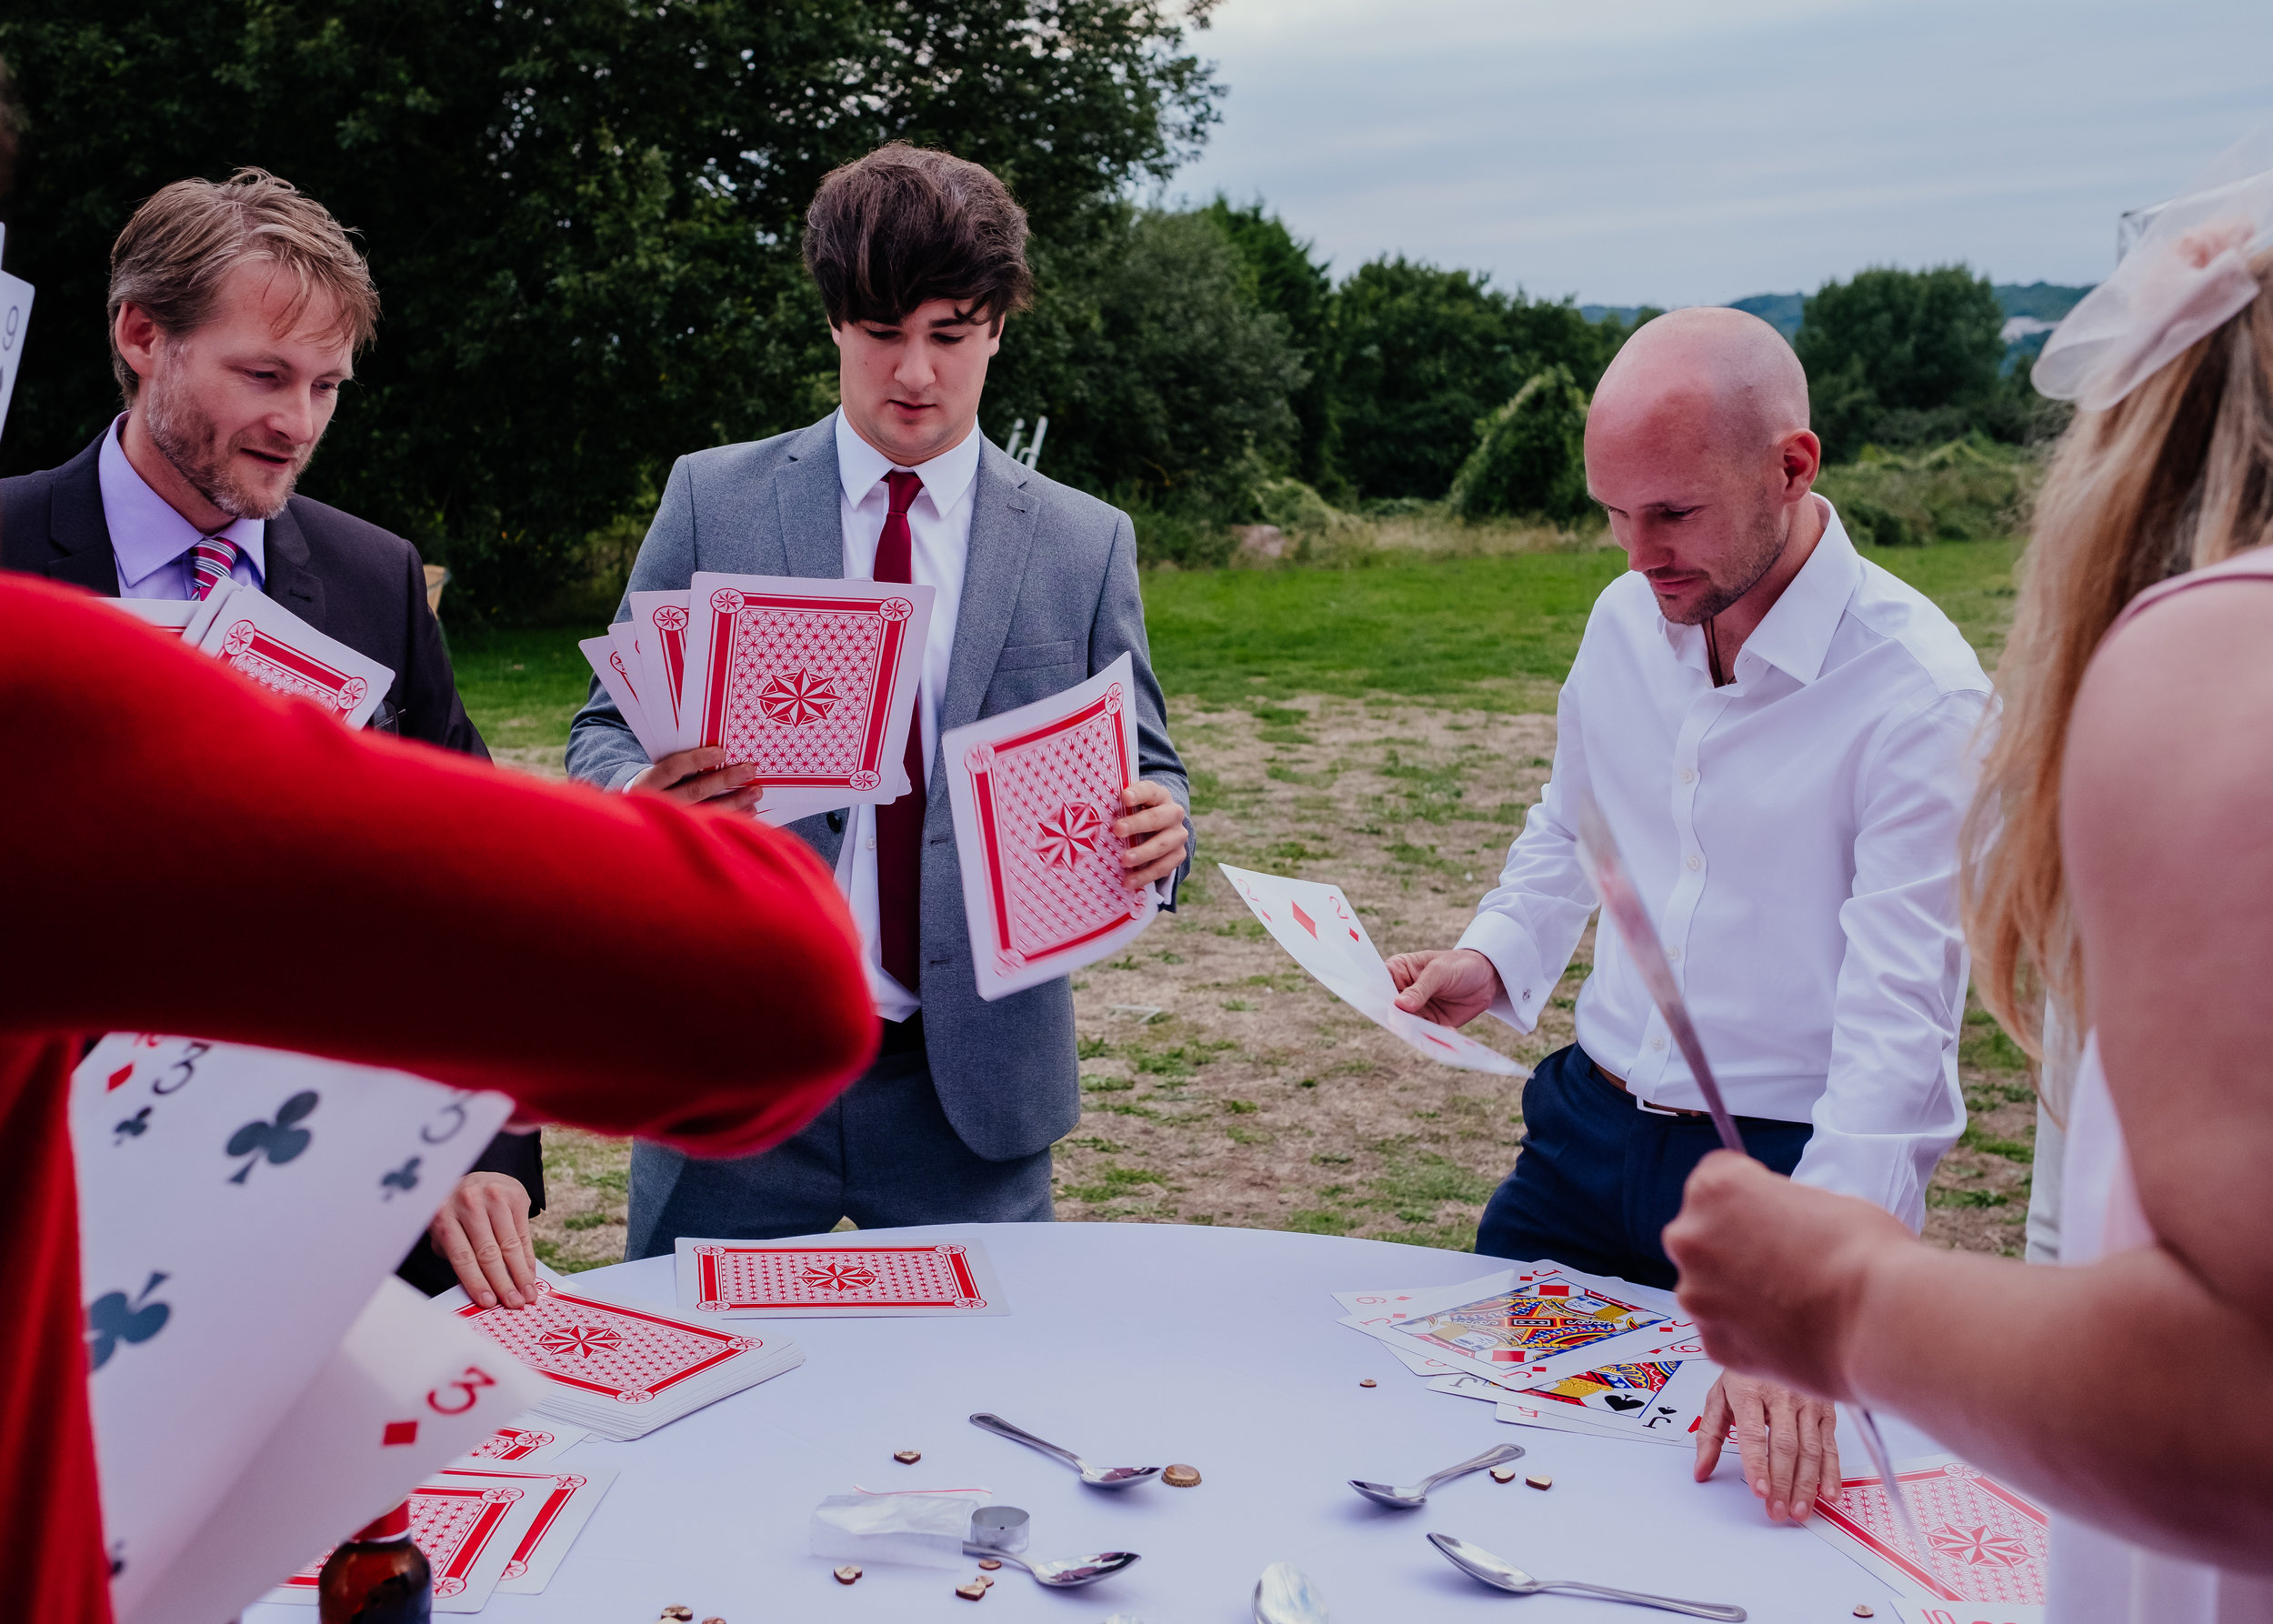 Wedding guests playing massive game of cards